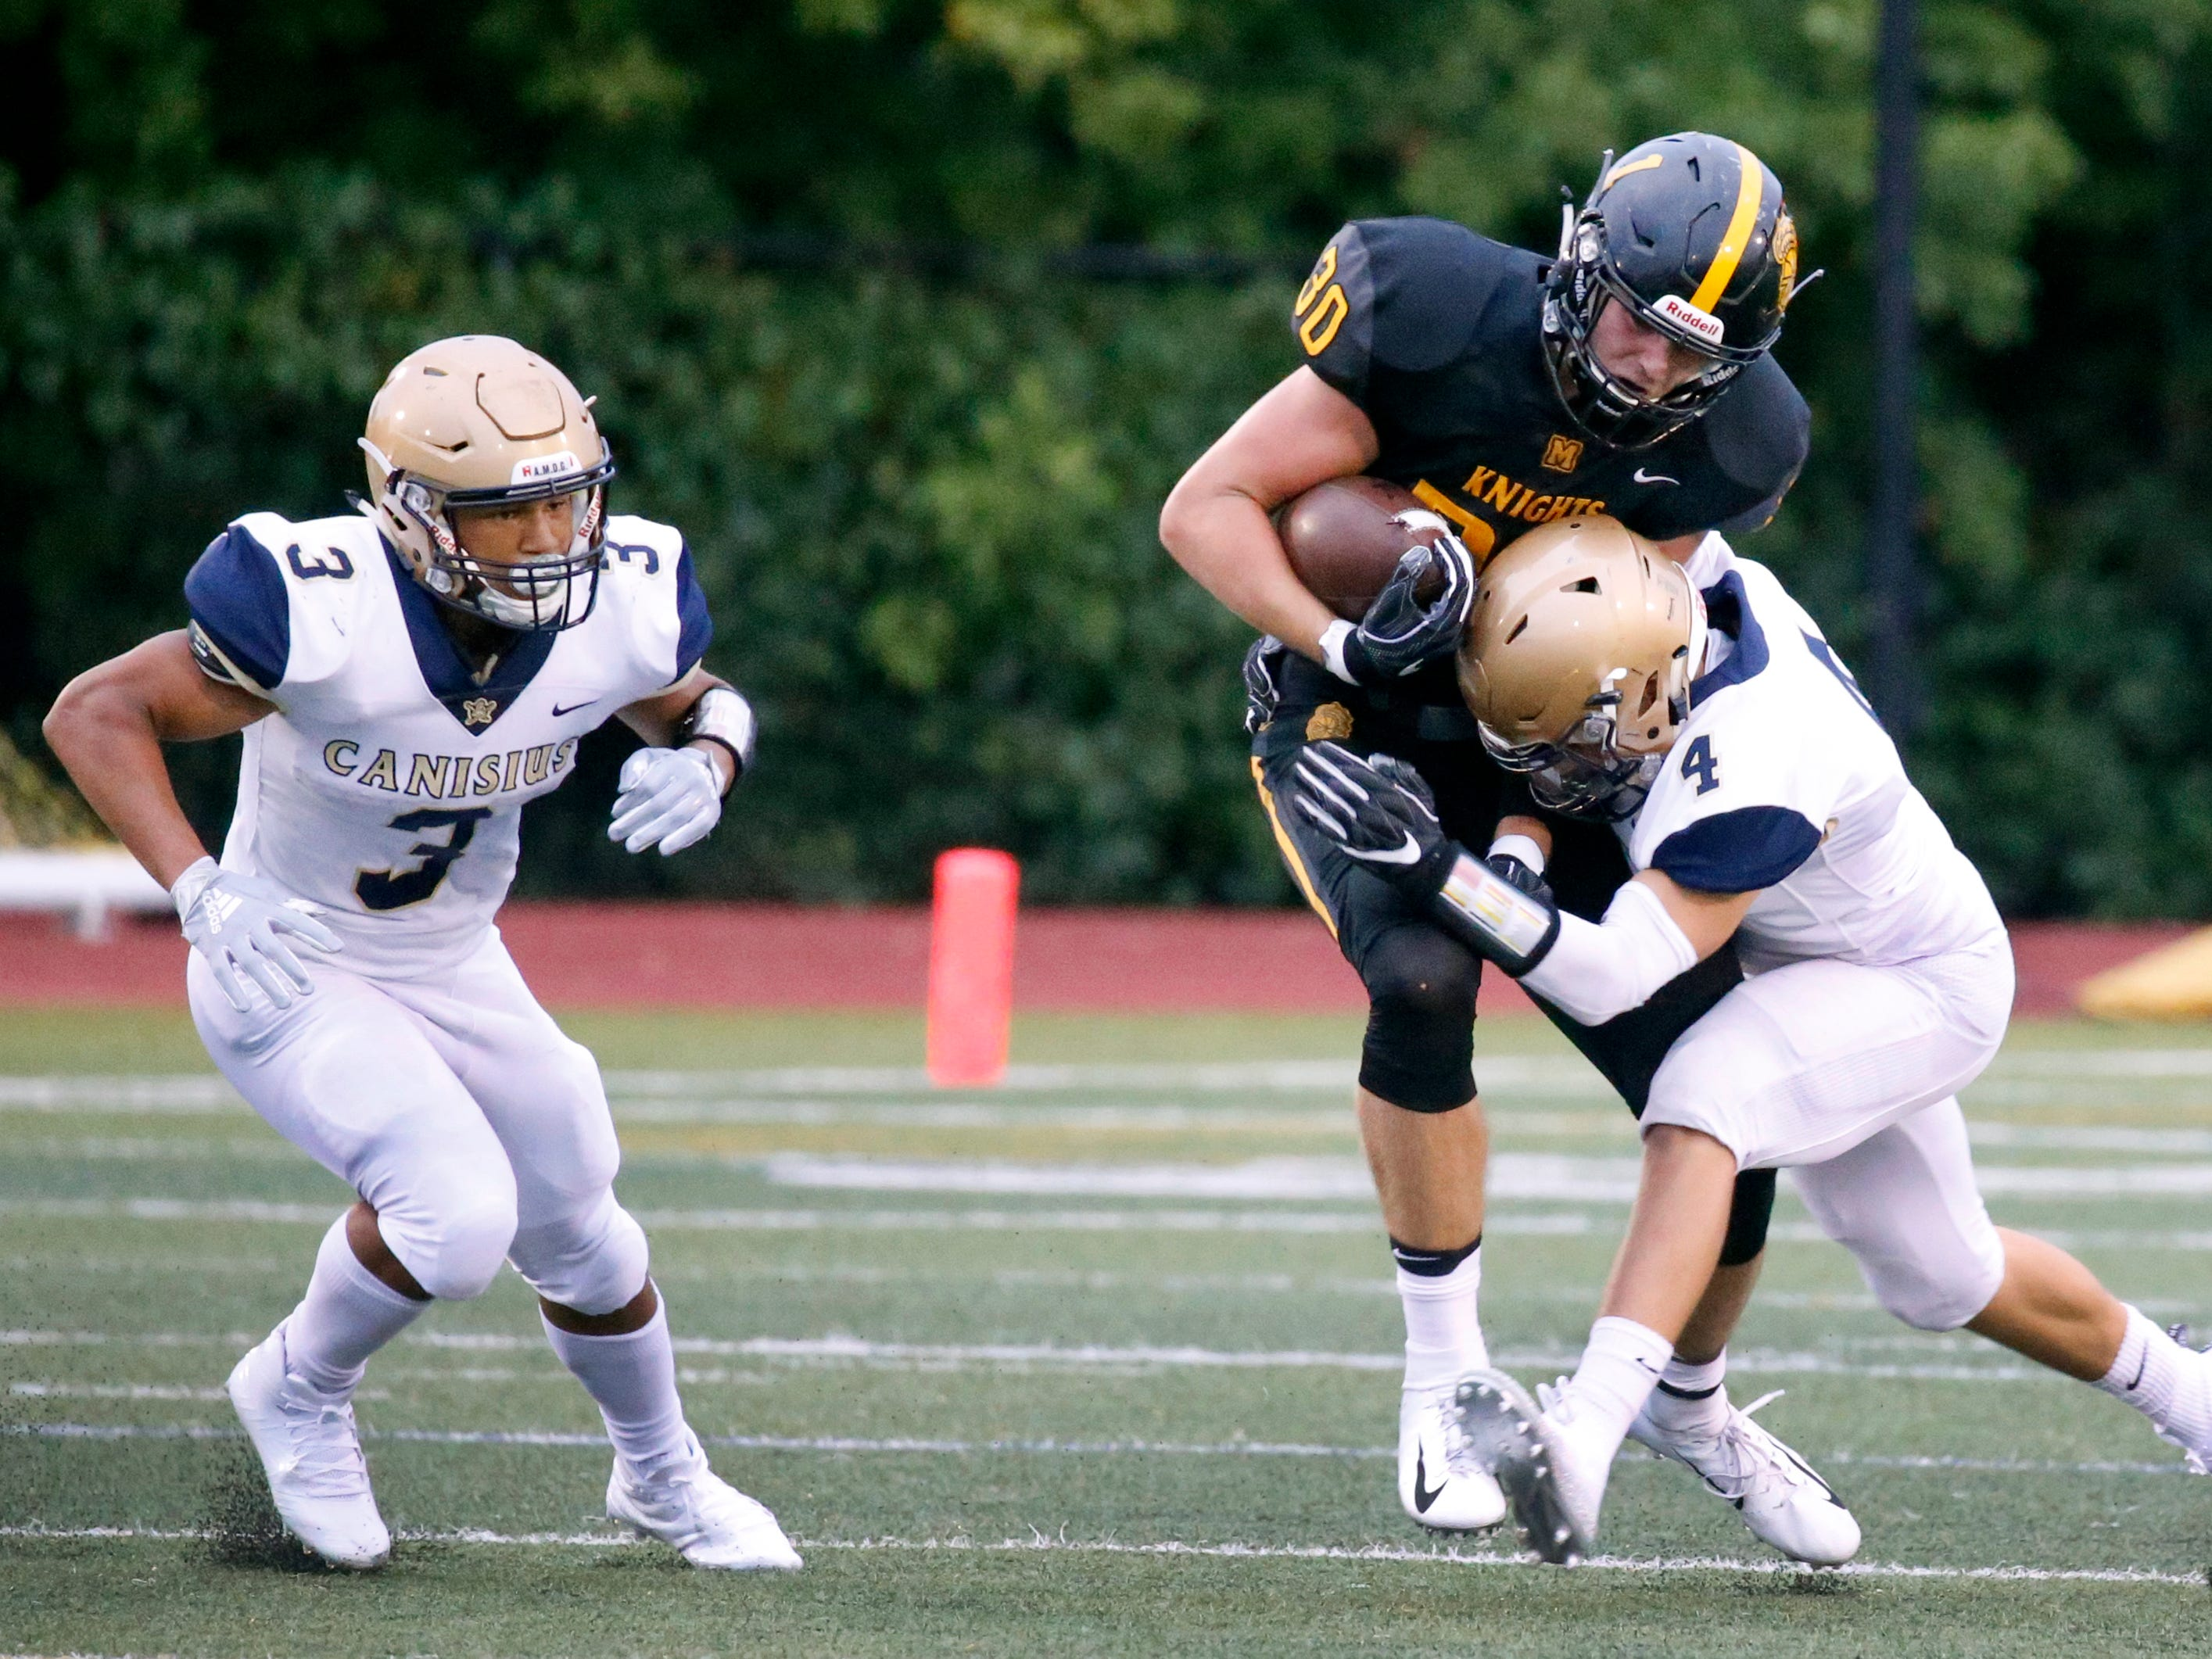 McQuaid's Connor Zamiara is tackled by Canisius' Nathan Drilling in the first quarter at McQuaid Jesuit High School.